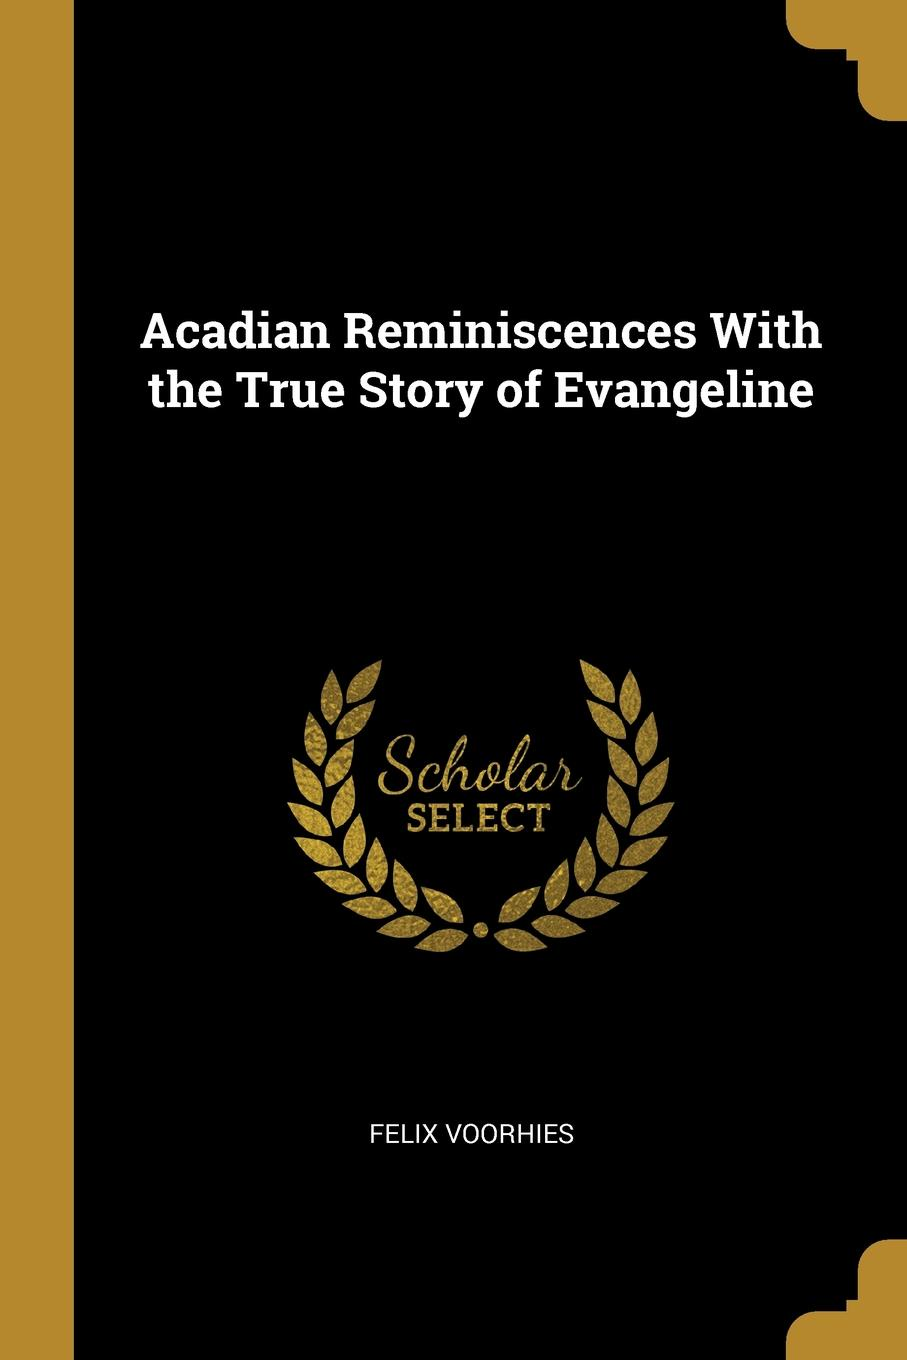 Felix Voorhies Acadian Reminiscences With the True Story of Evangeline felix voorhies acadian reminiscences the true story of evangeline